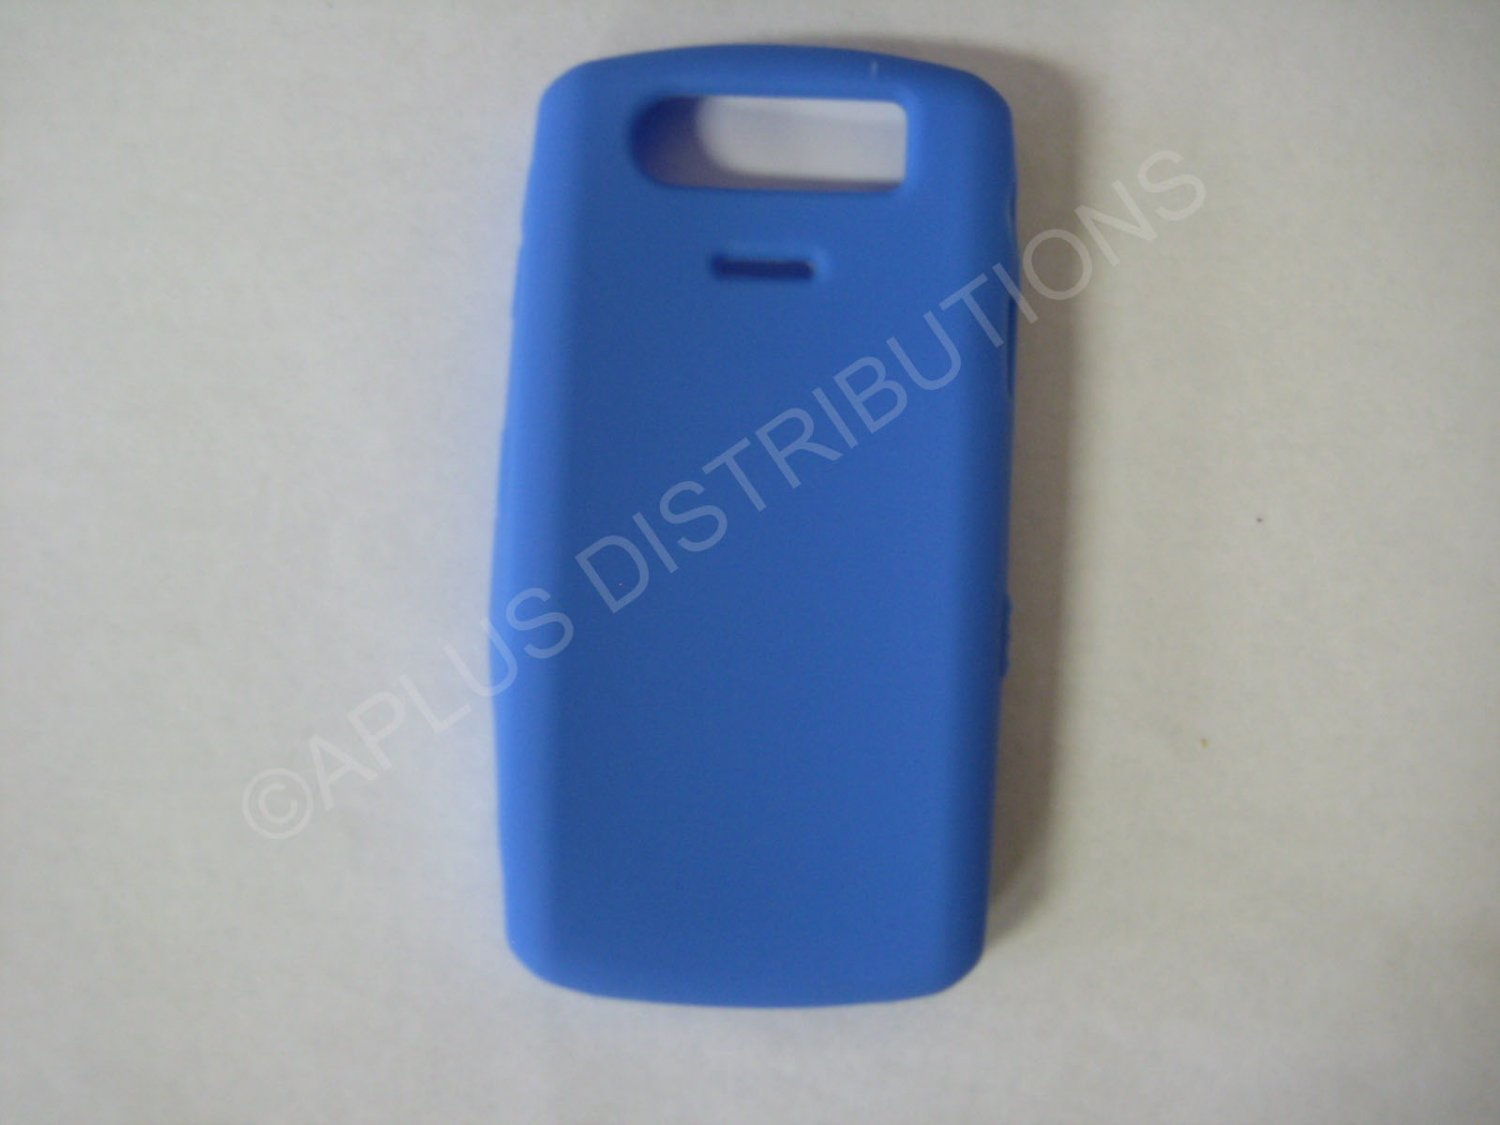 New Blue Solid Color Silicone Cover For Blackberry 8120/8110/8130 - (0198)